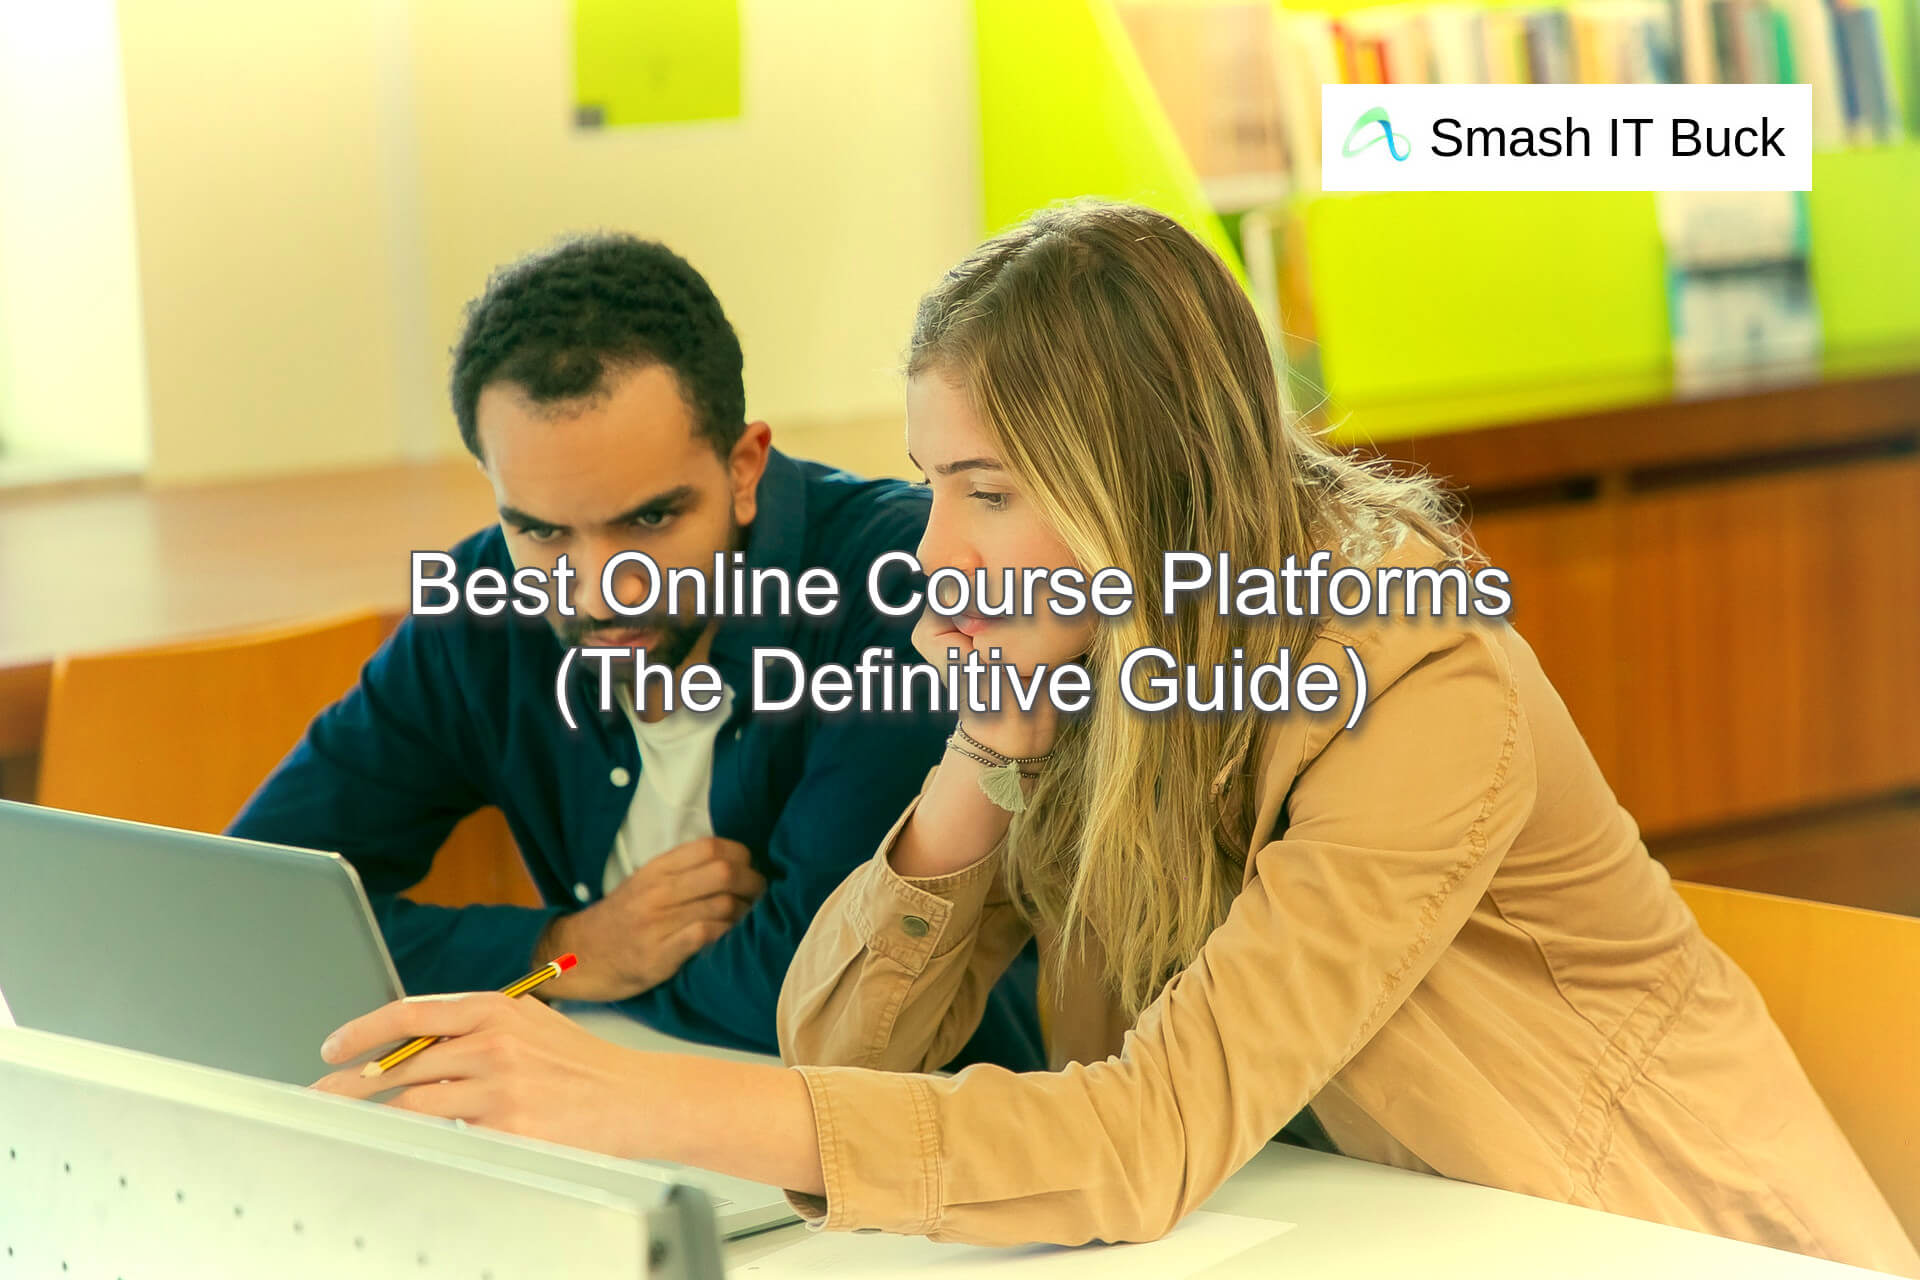 Best Online Course Platforms to Explore in 2021